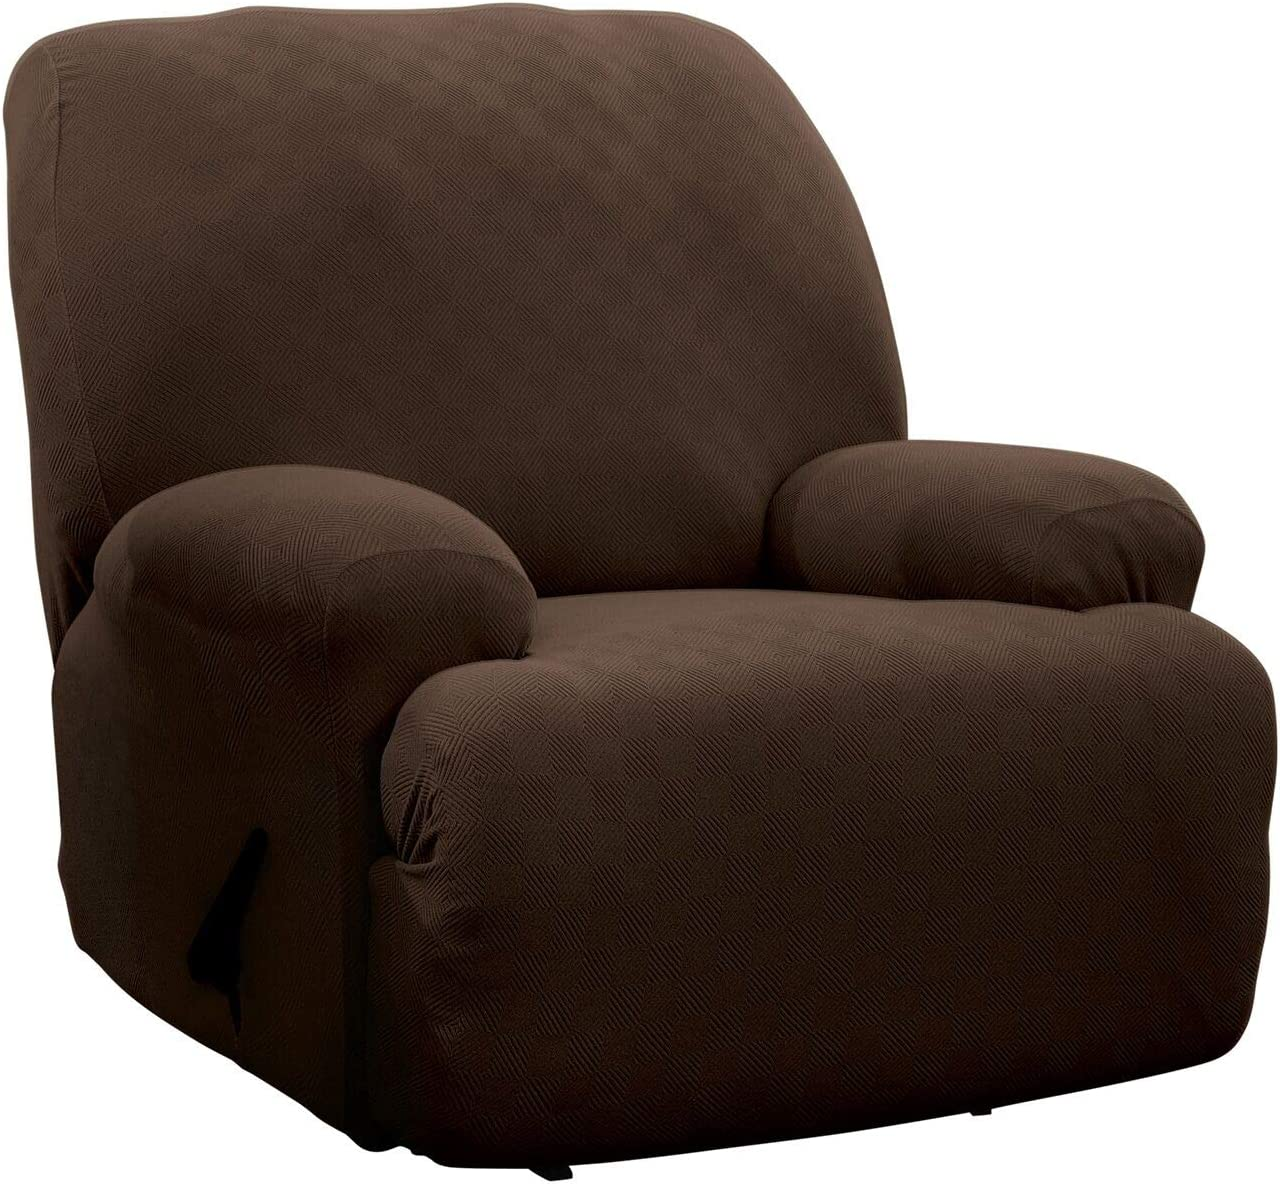 Stretch Sensations, Newport Jumbo Recliner Slipcover, Oversized Recliners, Perfect Chair Protection, Comfortable Easy Stretch Fabric (Chocolate)